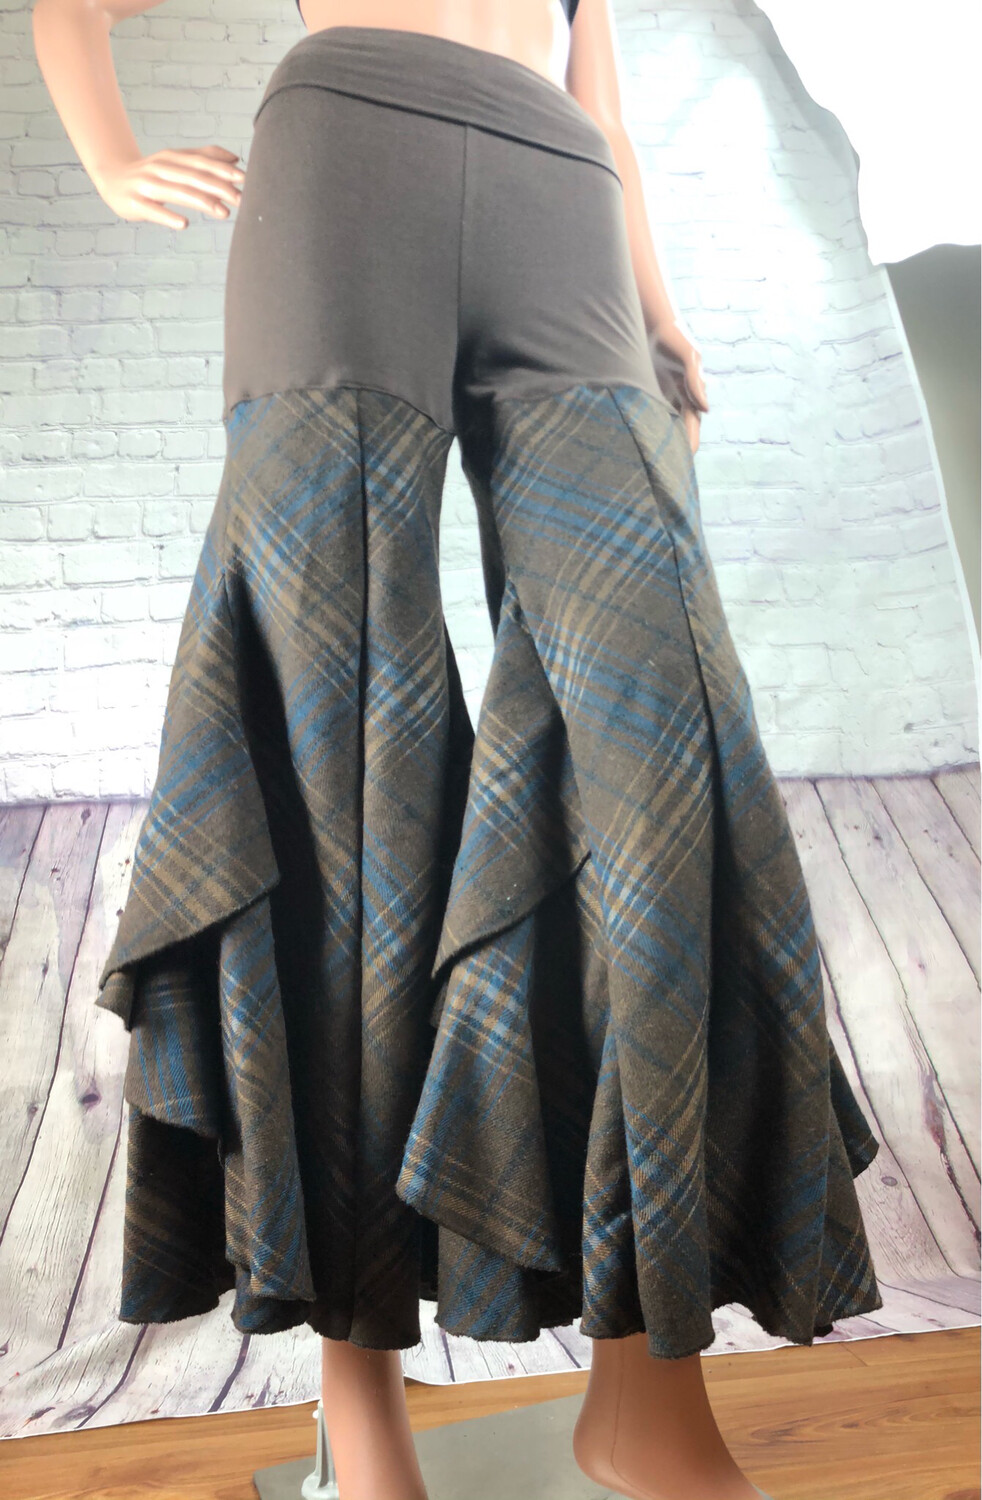 Upcycled Palazzo Pants Fold Down Yoga Waistband Stretch Fit Plaid Brown S Threads Size S / M